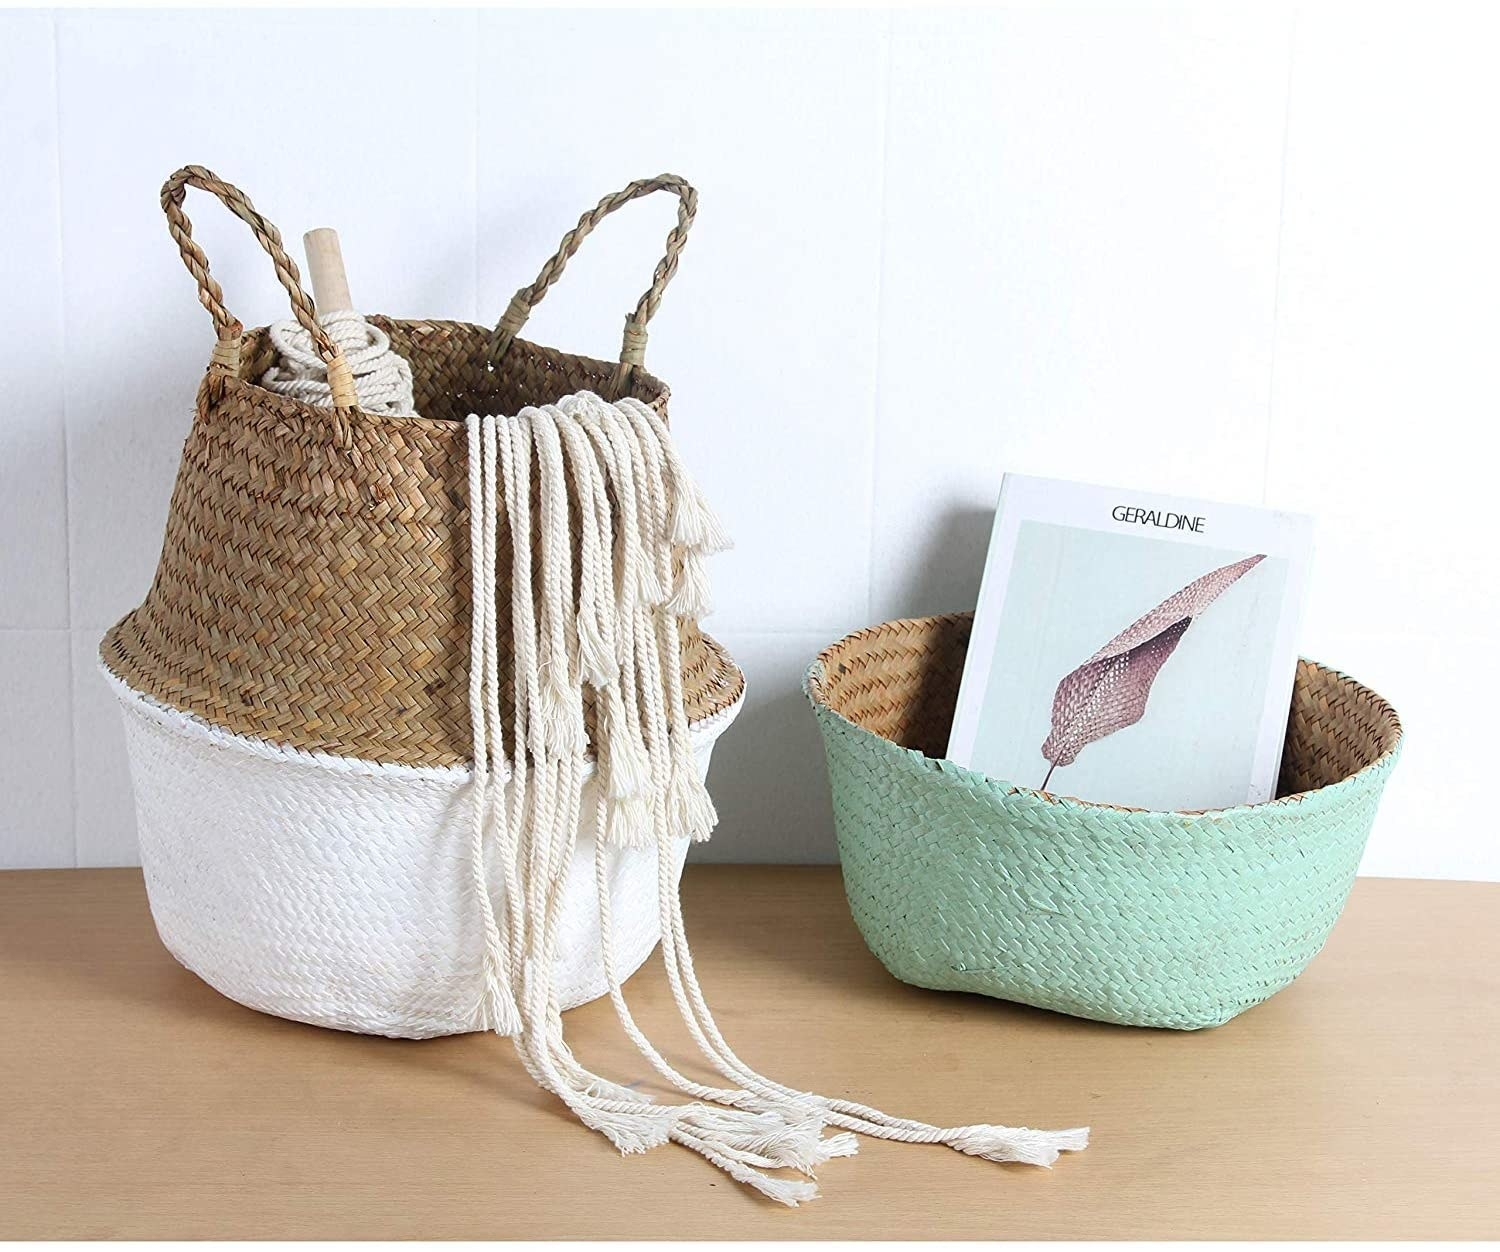 Two baskets showing the ways you can use the baskets — one not folded and one folded in white and teal